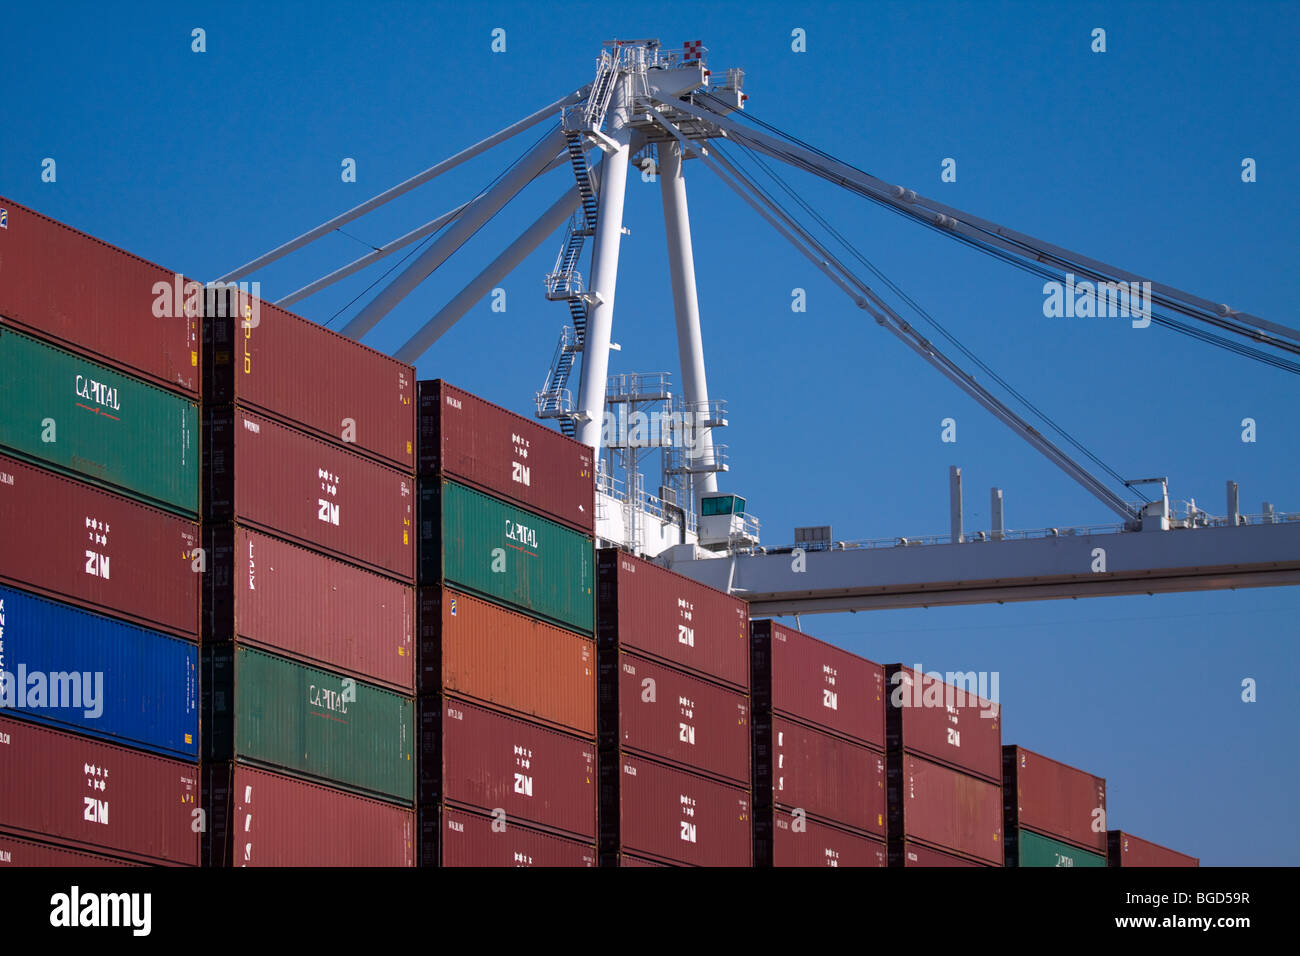 Crane and stacks of portainers on a cargo container ship Stock Photo